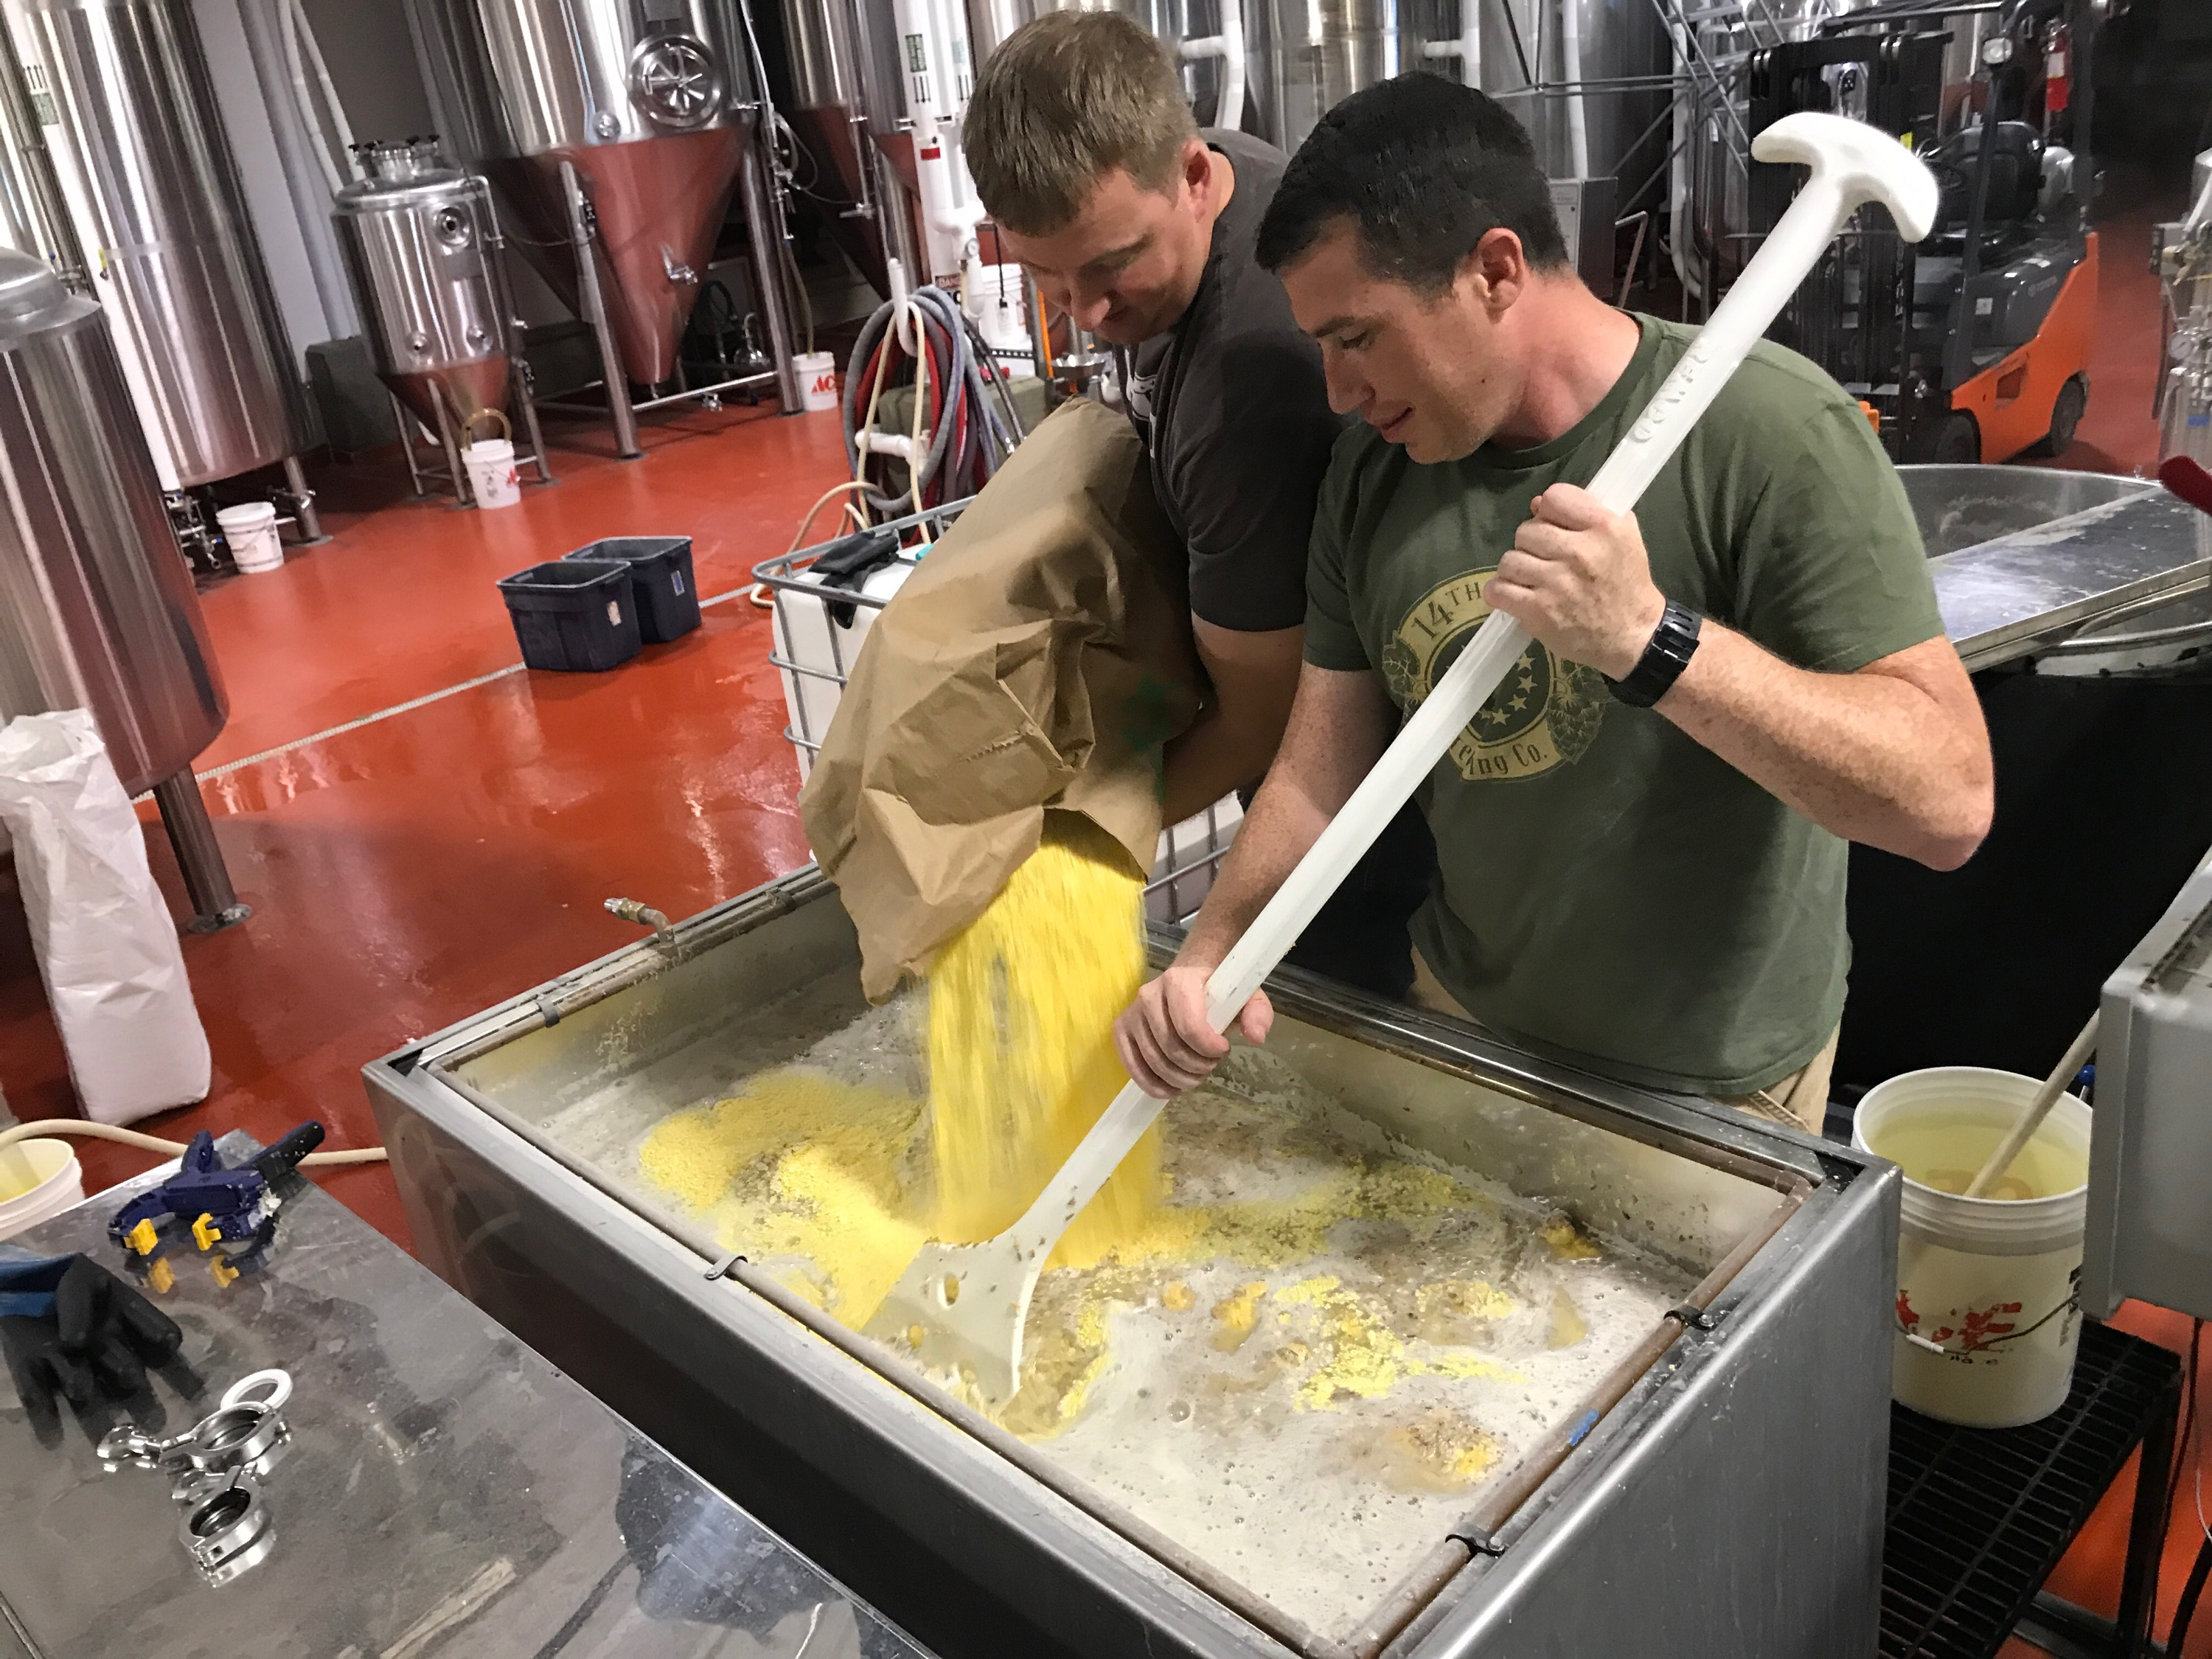 Zac Fike (L) and Matt Kehaya (R) work on a batch of beer at 14th Star Brewing Company. 14th Star donates proceeds from every batch to local nonprofits. Courtesy of Danger Close Craft Distilling